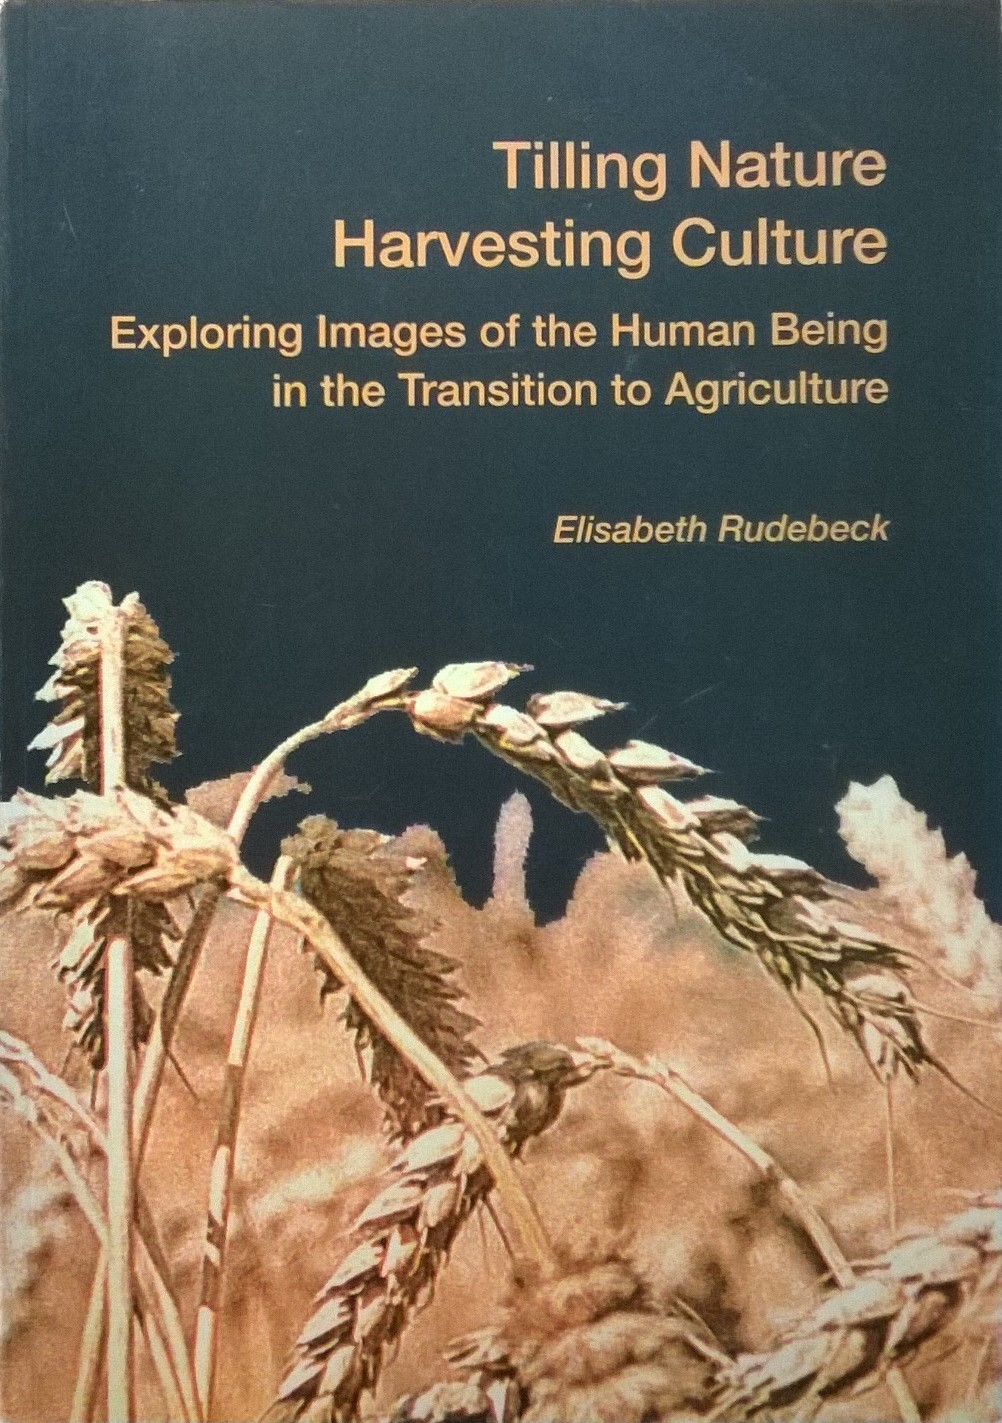 Rudebeck, Elisabeth Tilling Nature: Harvesting Culture: Exploring Images of the Human Being in the Transition to Agriculture